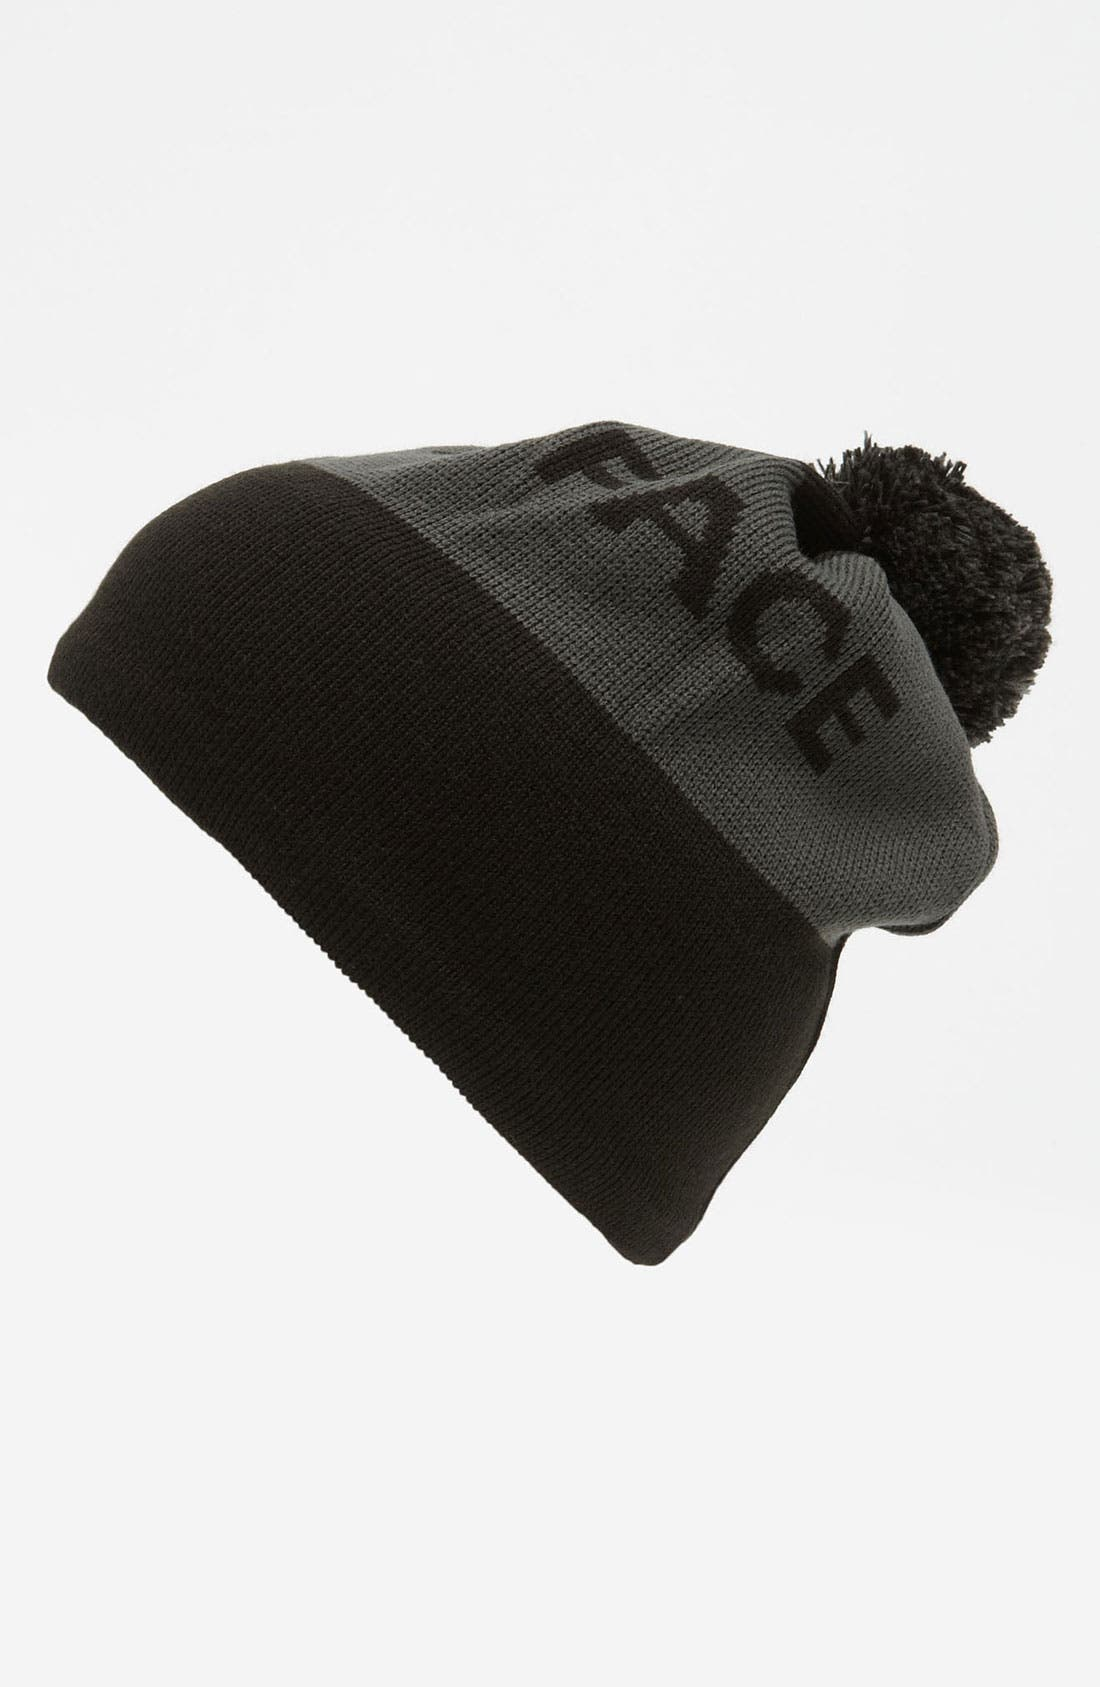 Main Image - The North Face 'Throwback' Knit Cap